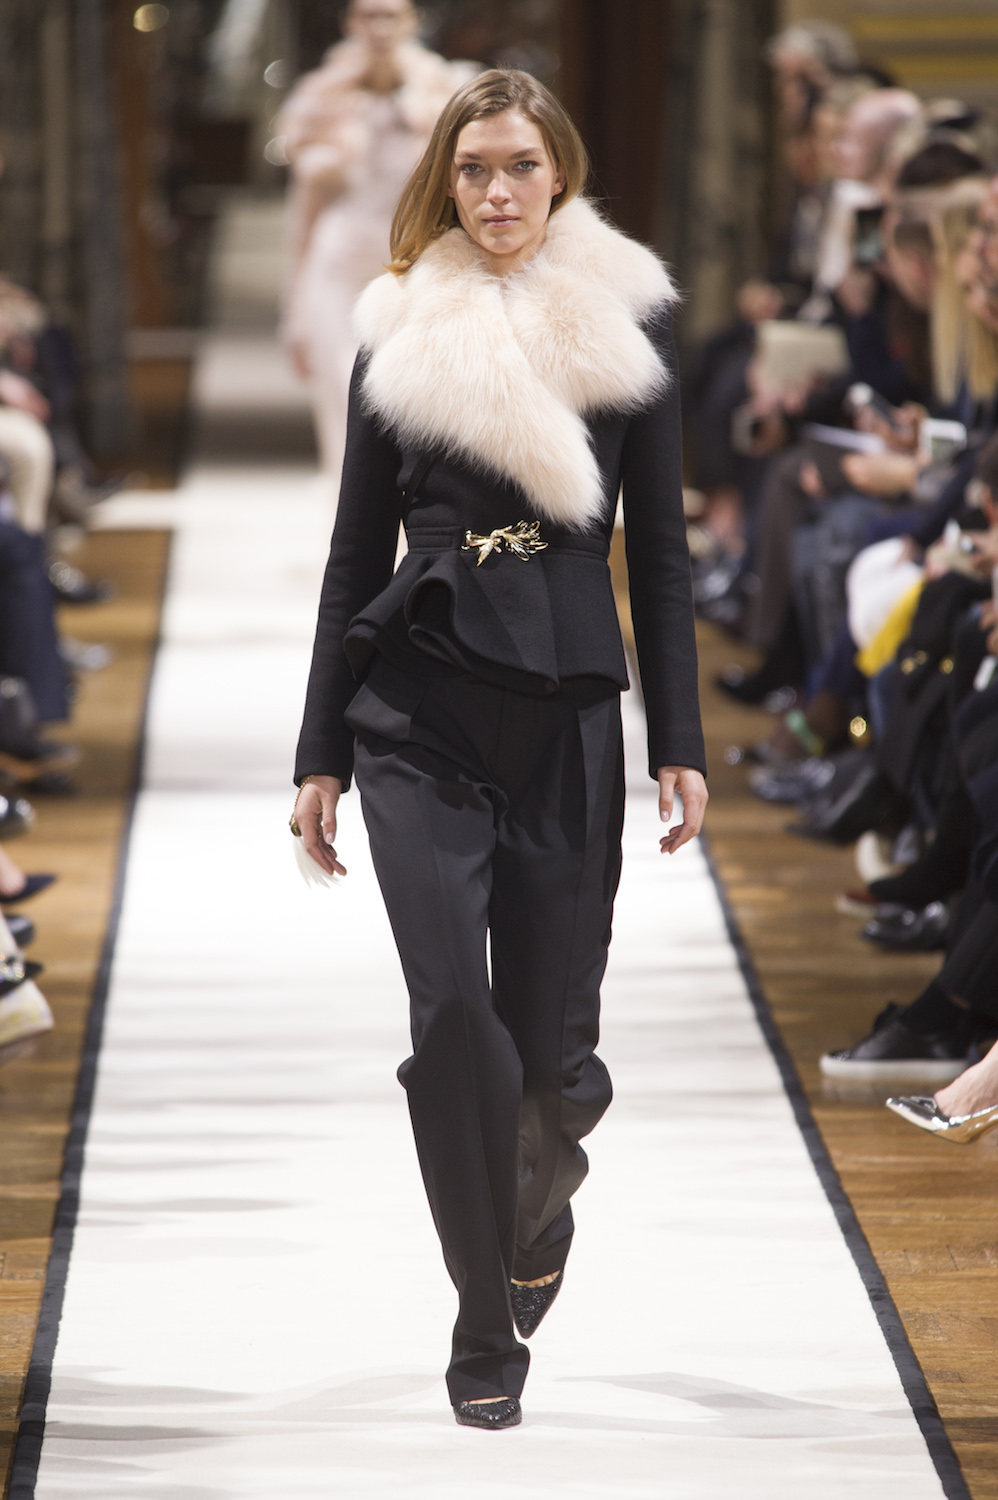 Lanvin's New Romanticism and